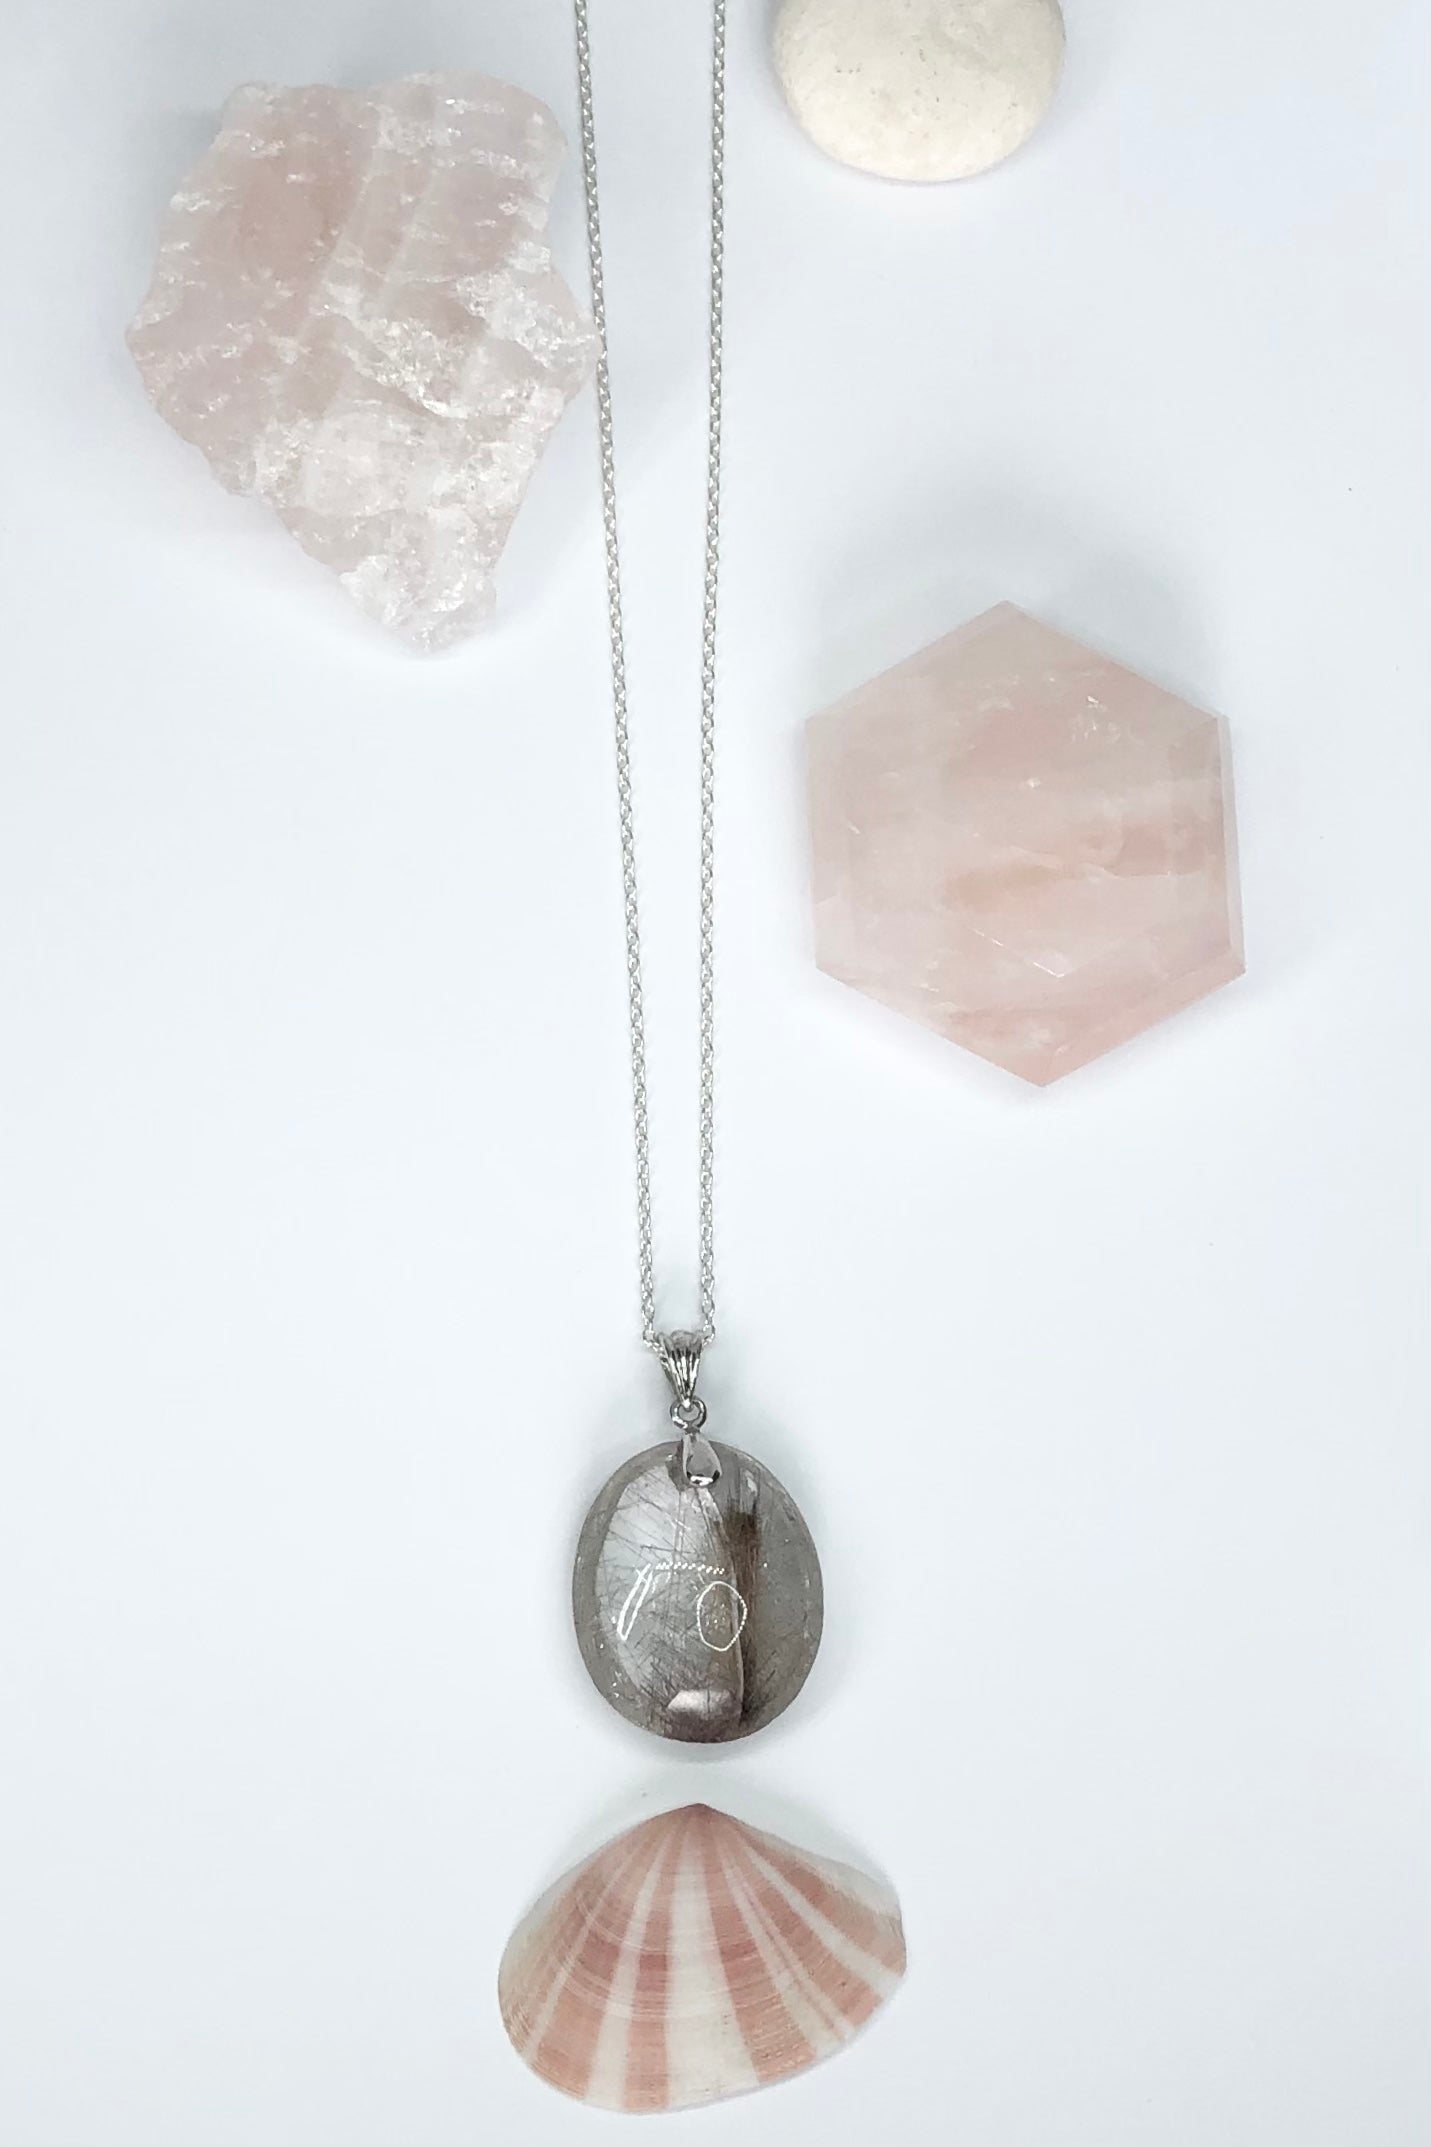 This is a very interesting natural crystal pendant polished to a high shine, this stone is cut in a symmetrical oval shape with the delicate silvery coloured Rutile needles showing on both sides.